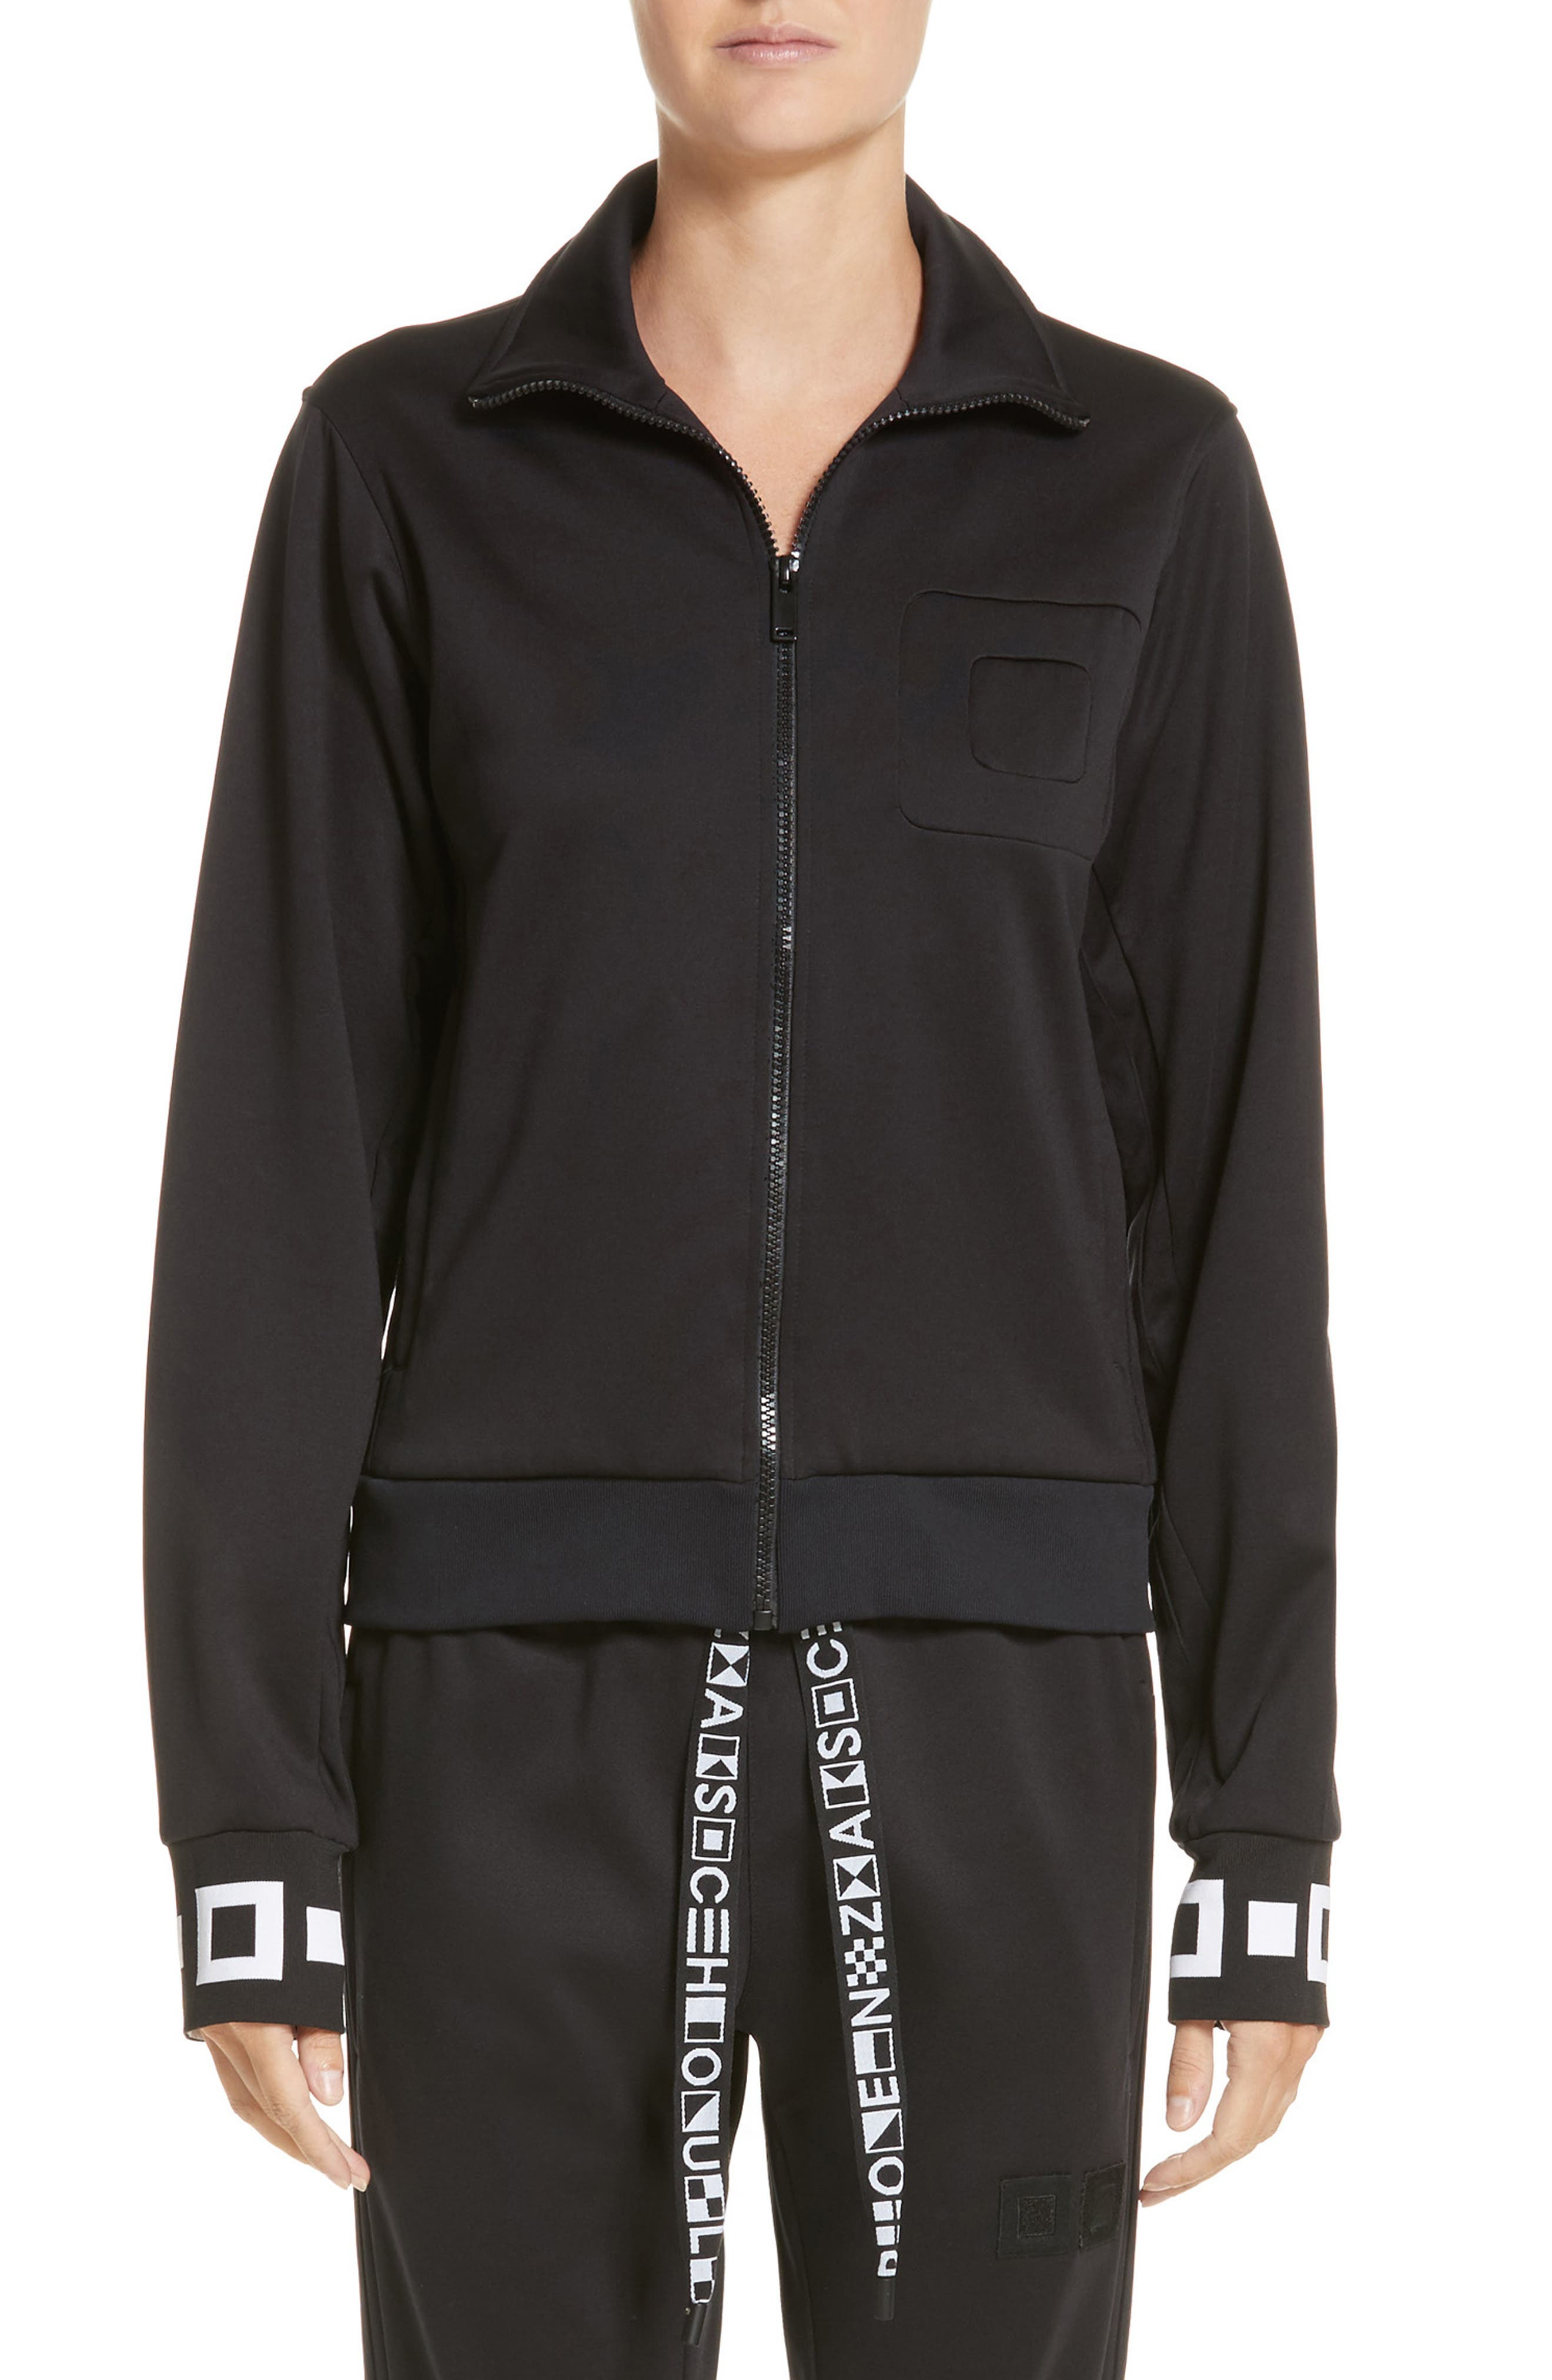 PSWL Jersey Track Jacket,                         Main,                         color,